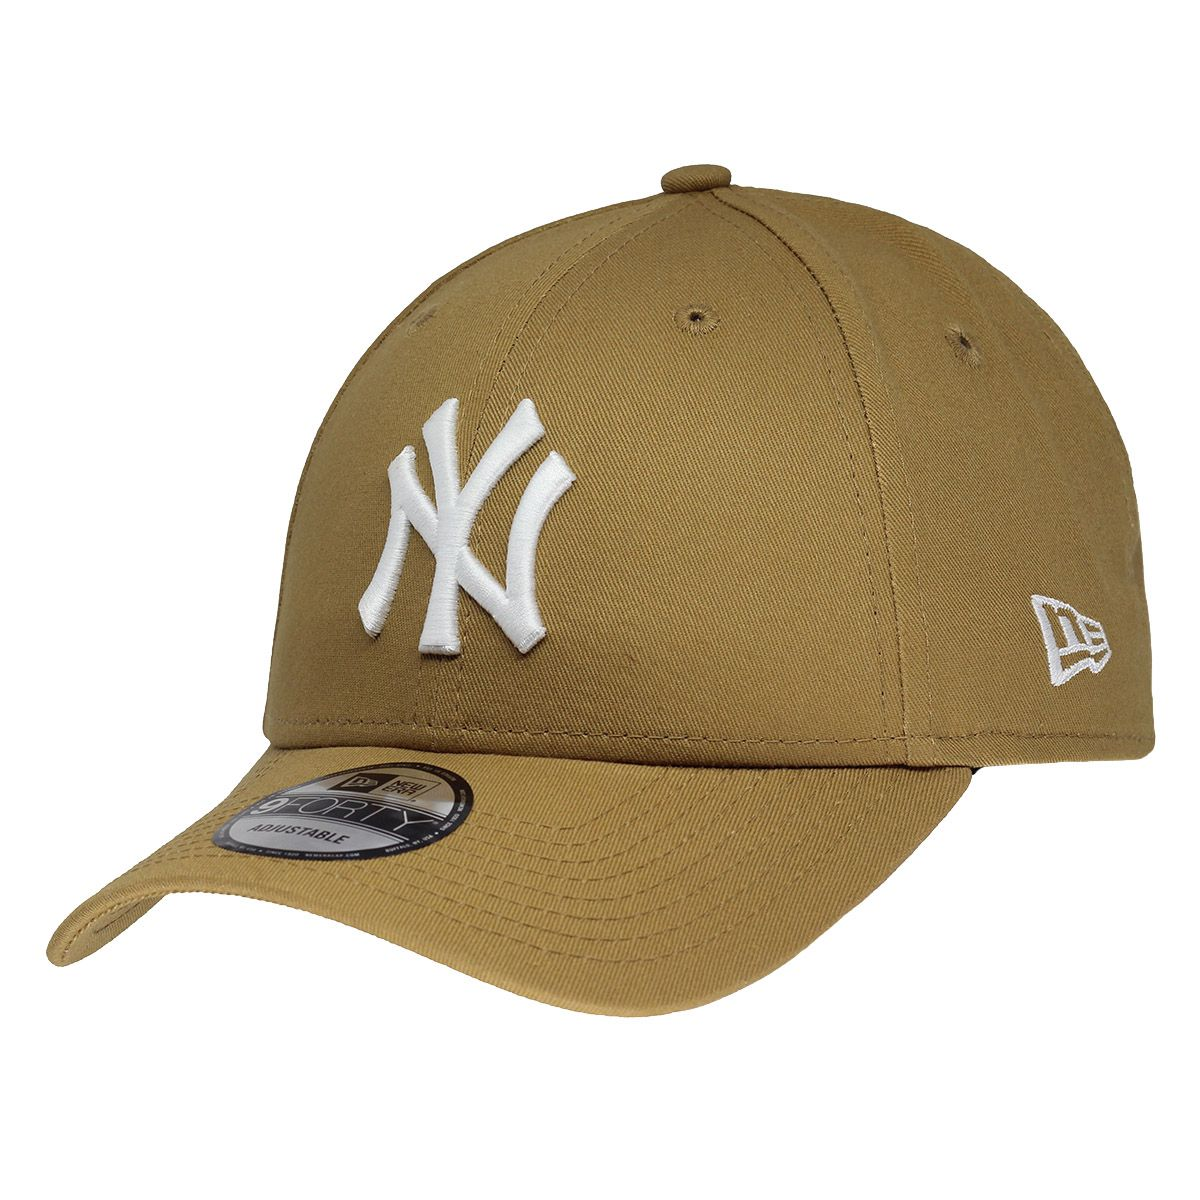 Boné New Era Aba Curva 940 SN MLB NY Yankees Colors Marrom Claro